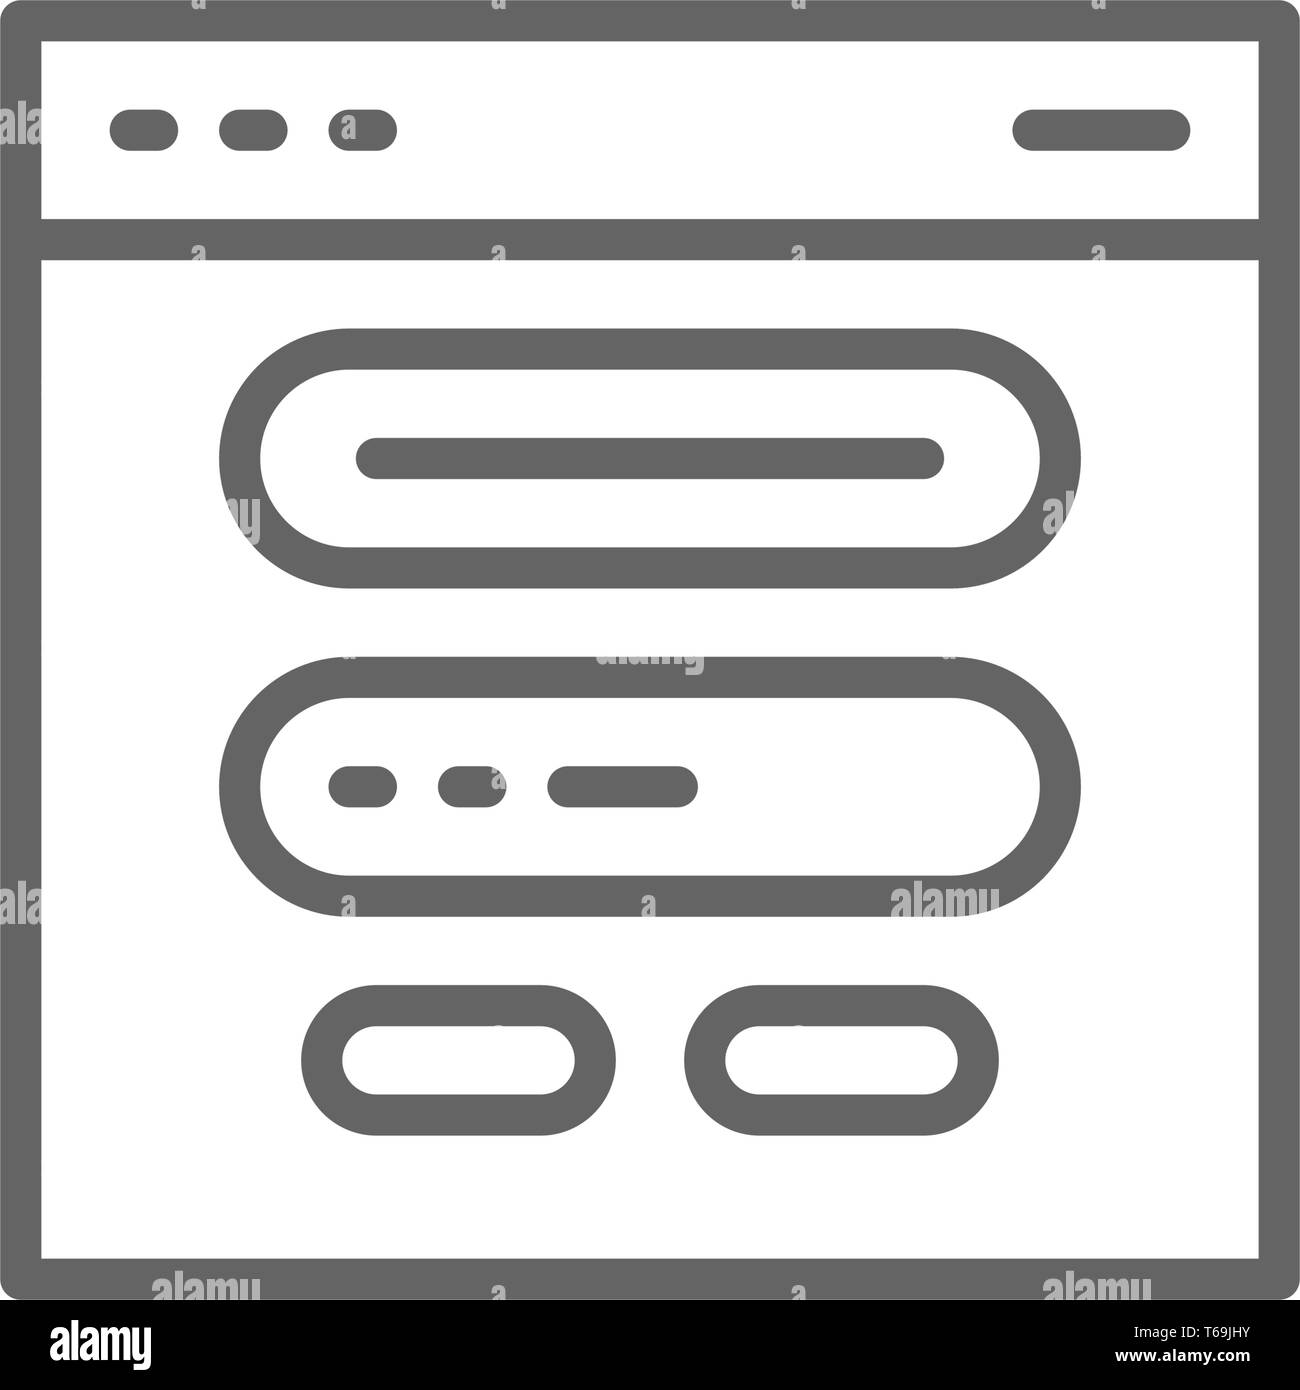 Browser window, website and site line icon. - Stock Image